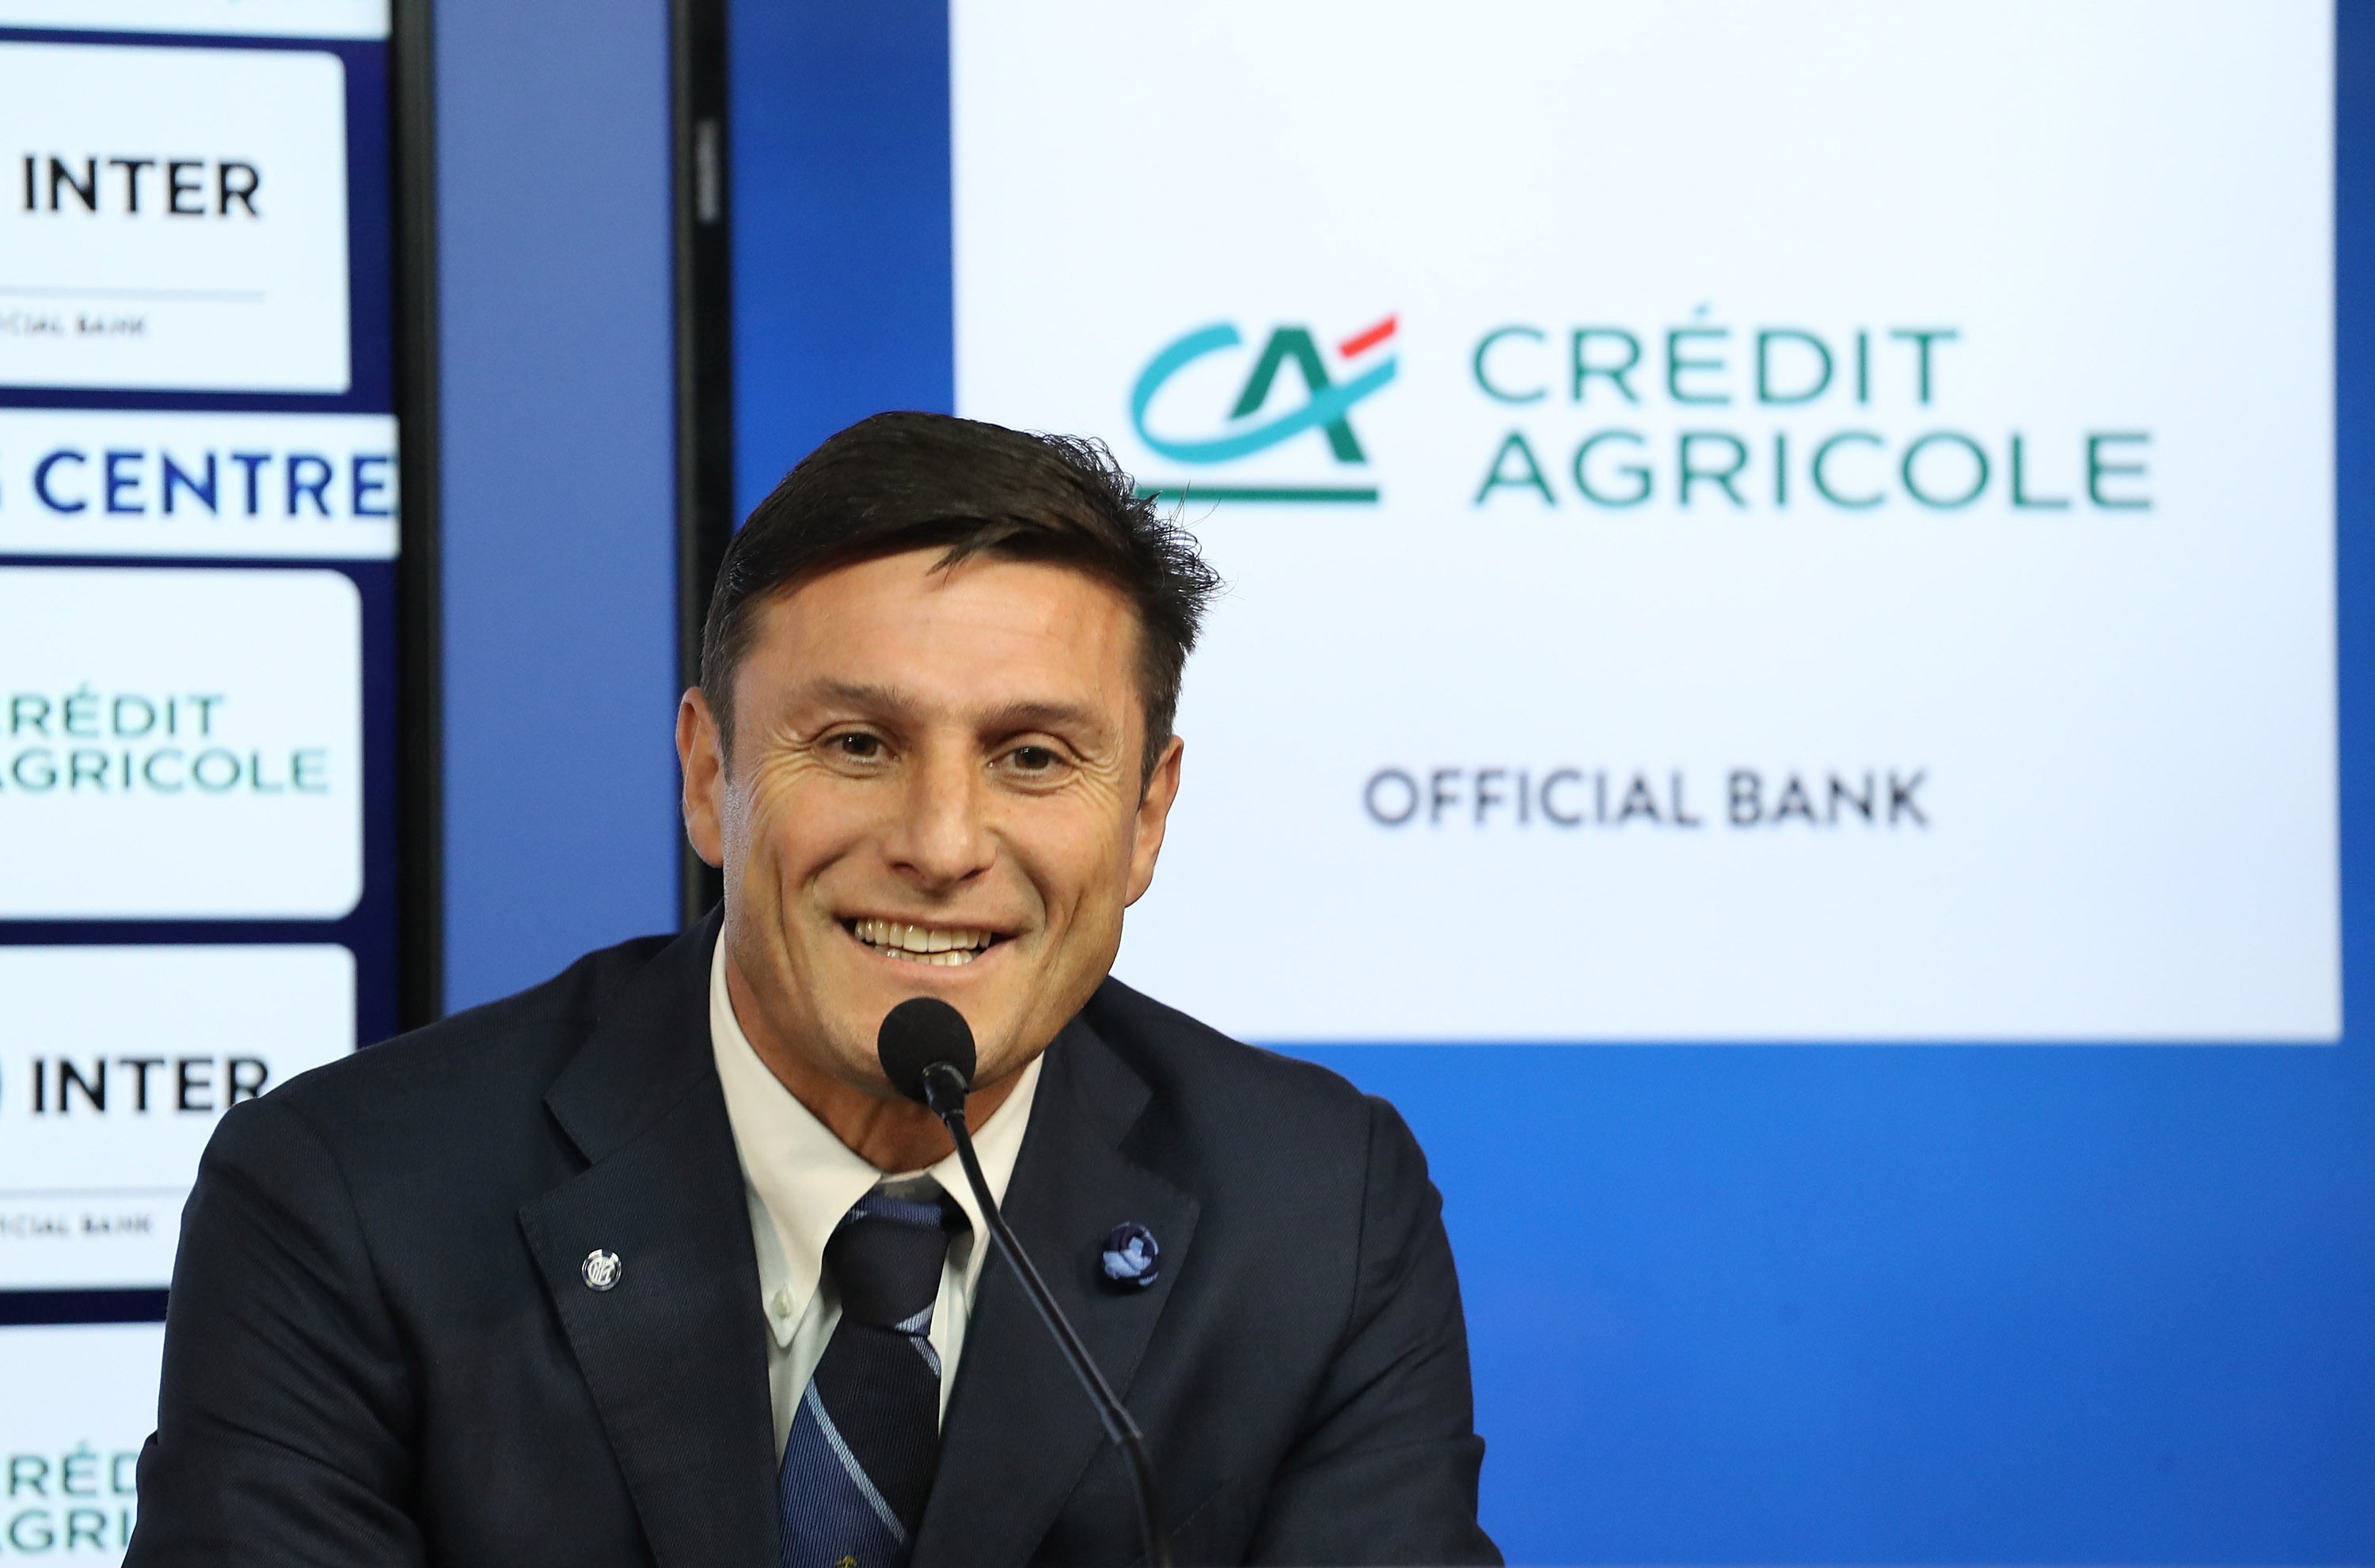 Crédit Agricole become FC Internazionale Milano's Official Bank and Top Partner